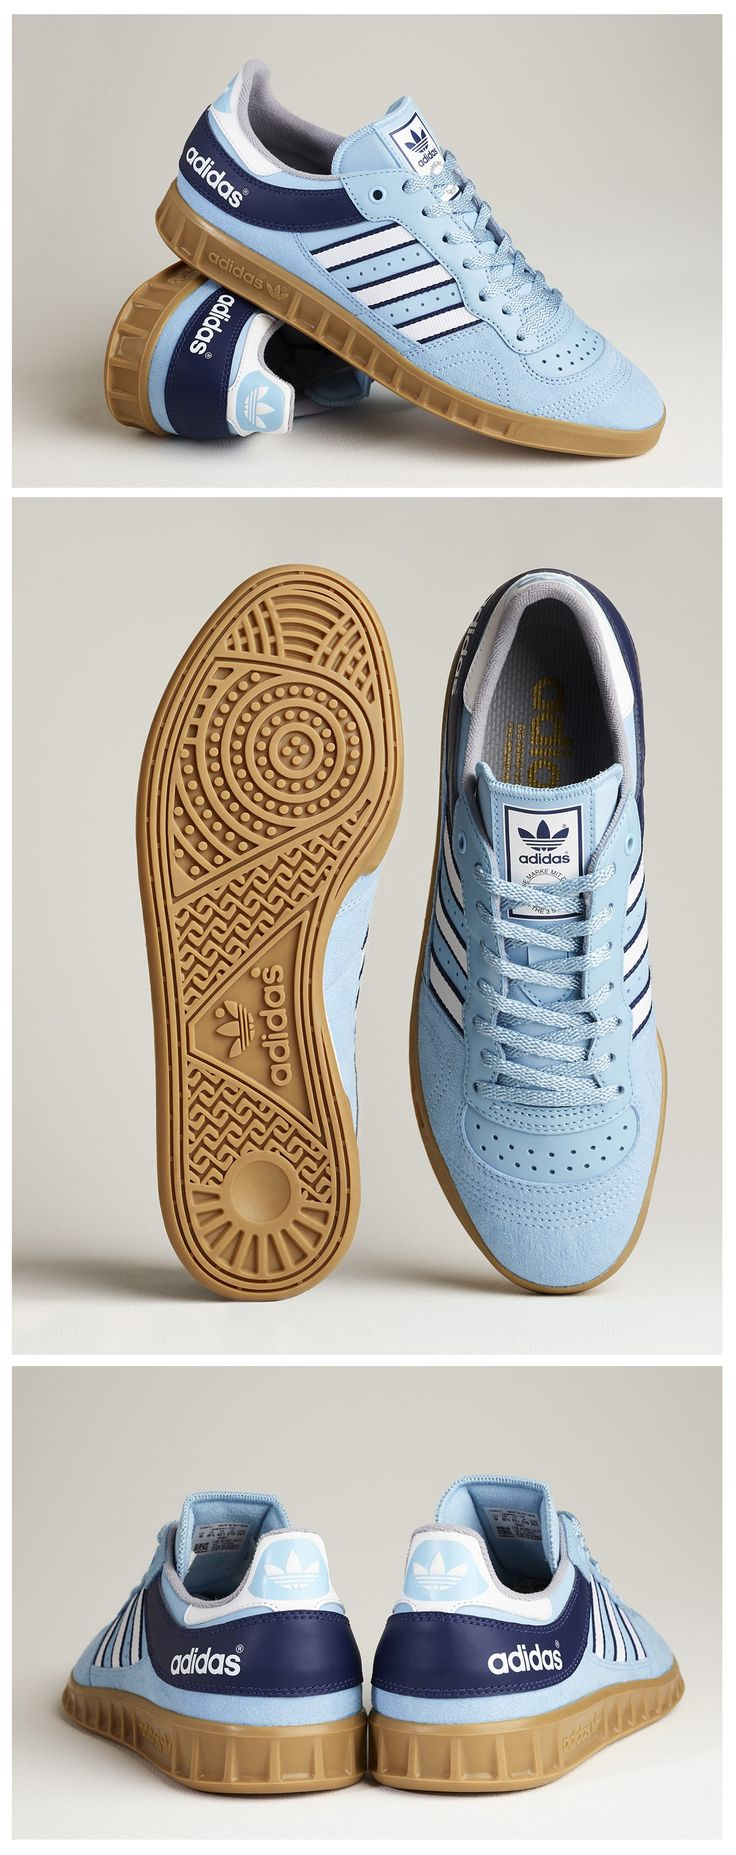 adidas Originals Handball Top: Argentina Blue http://feedproxy.google.com/fashiongoshoes1